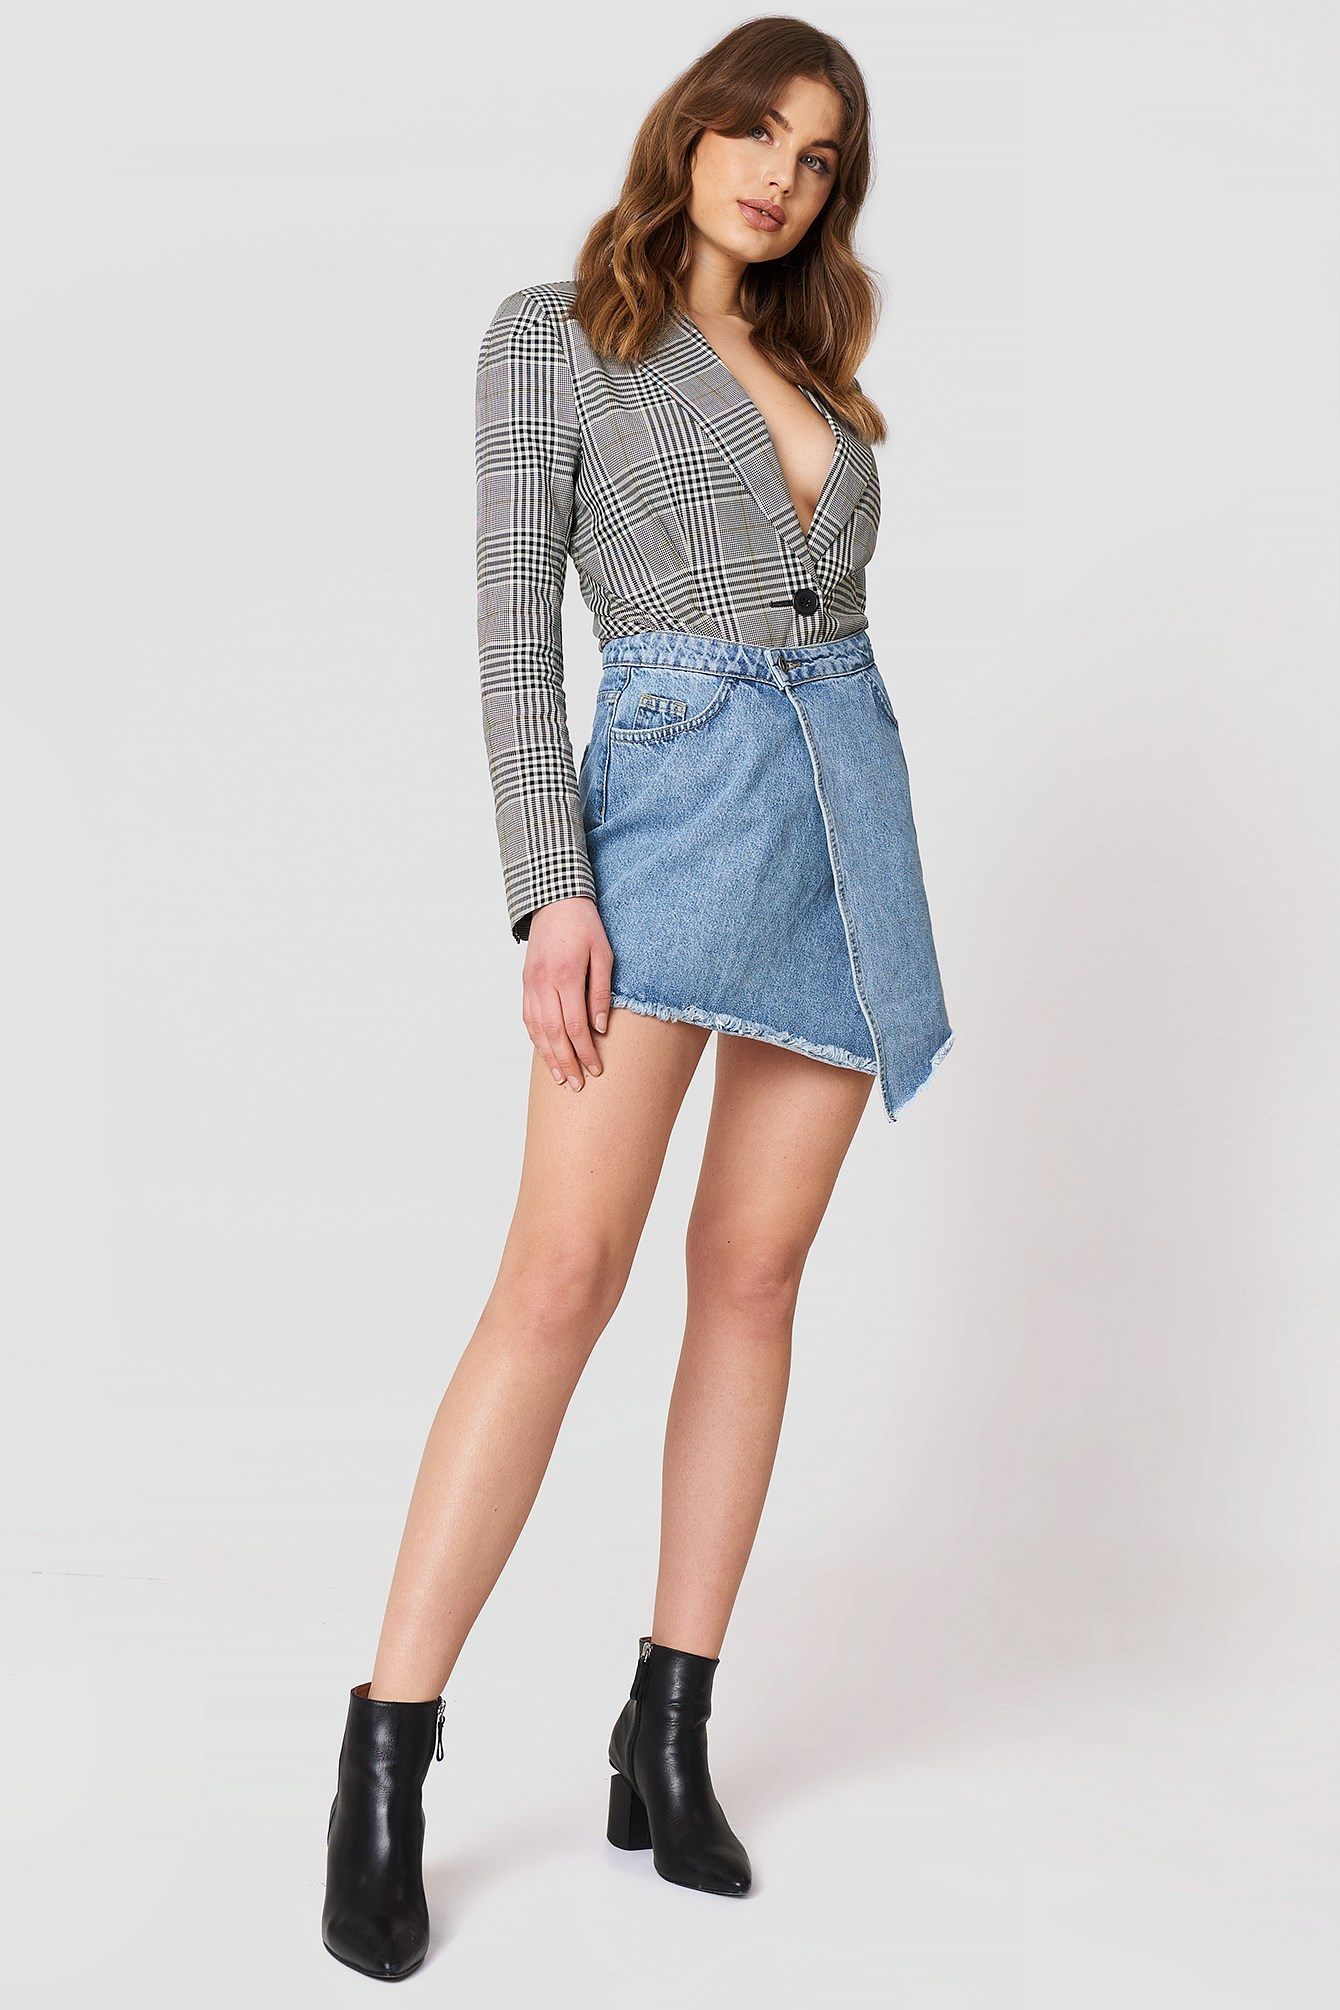 Asymmetric Cut Denm Skirt NA-KD.COM